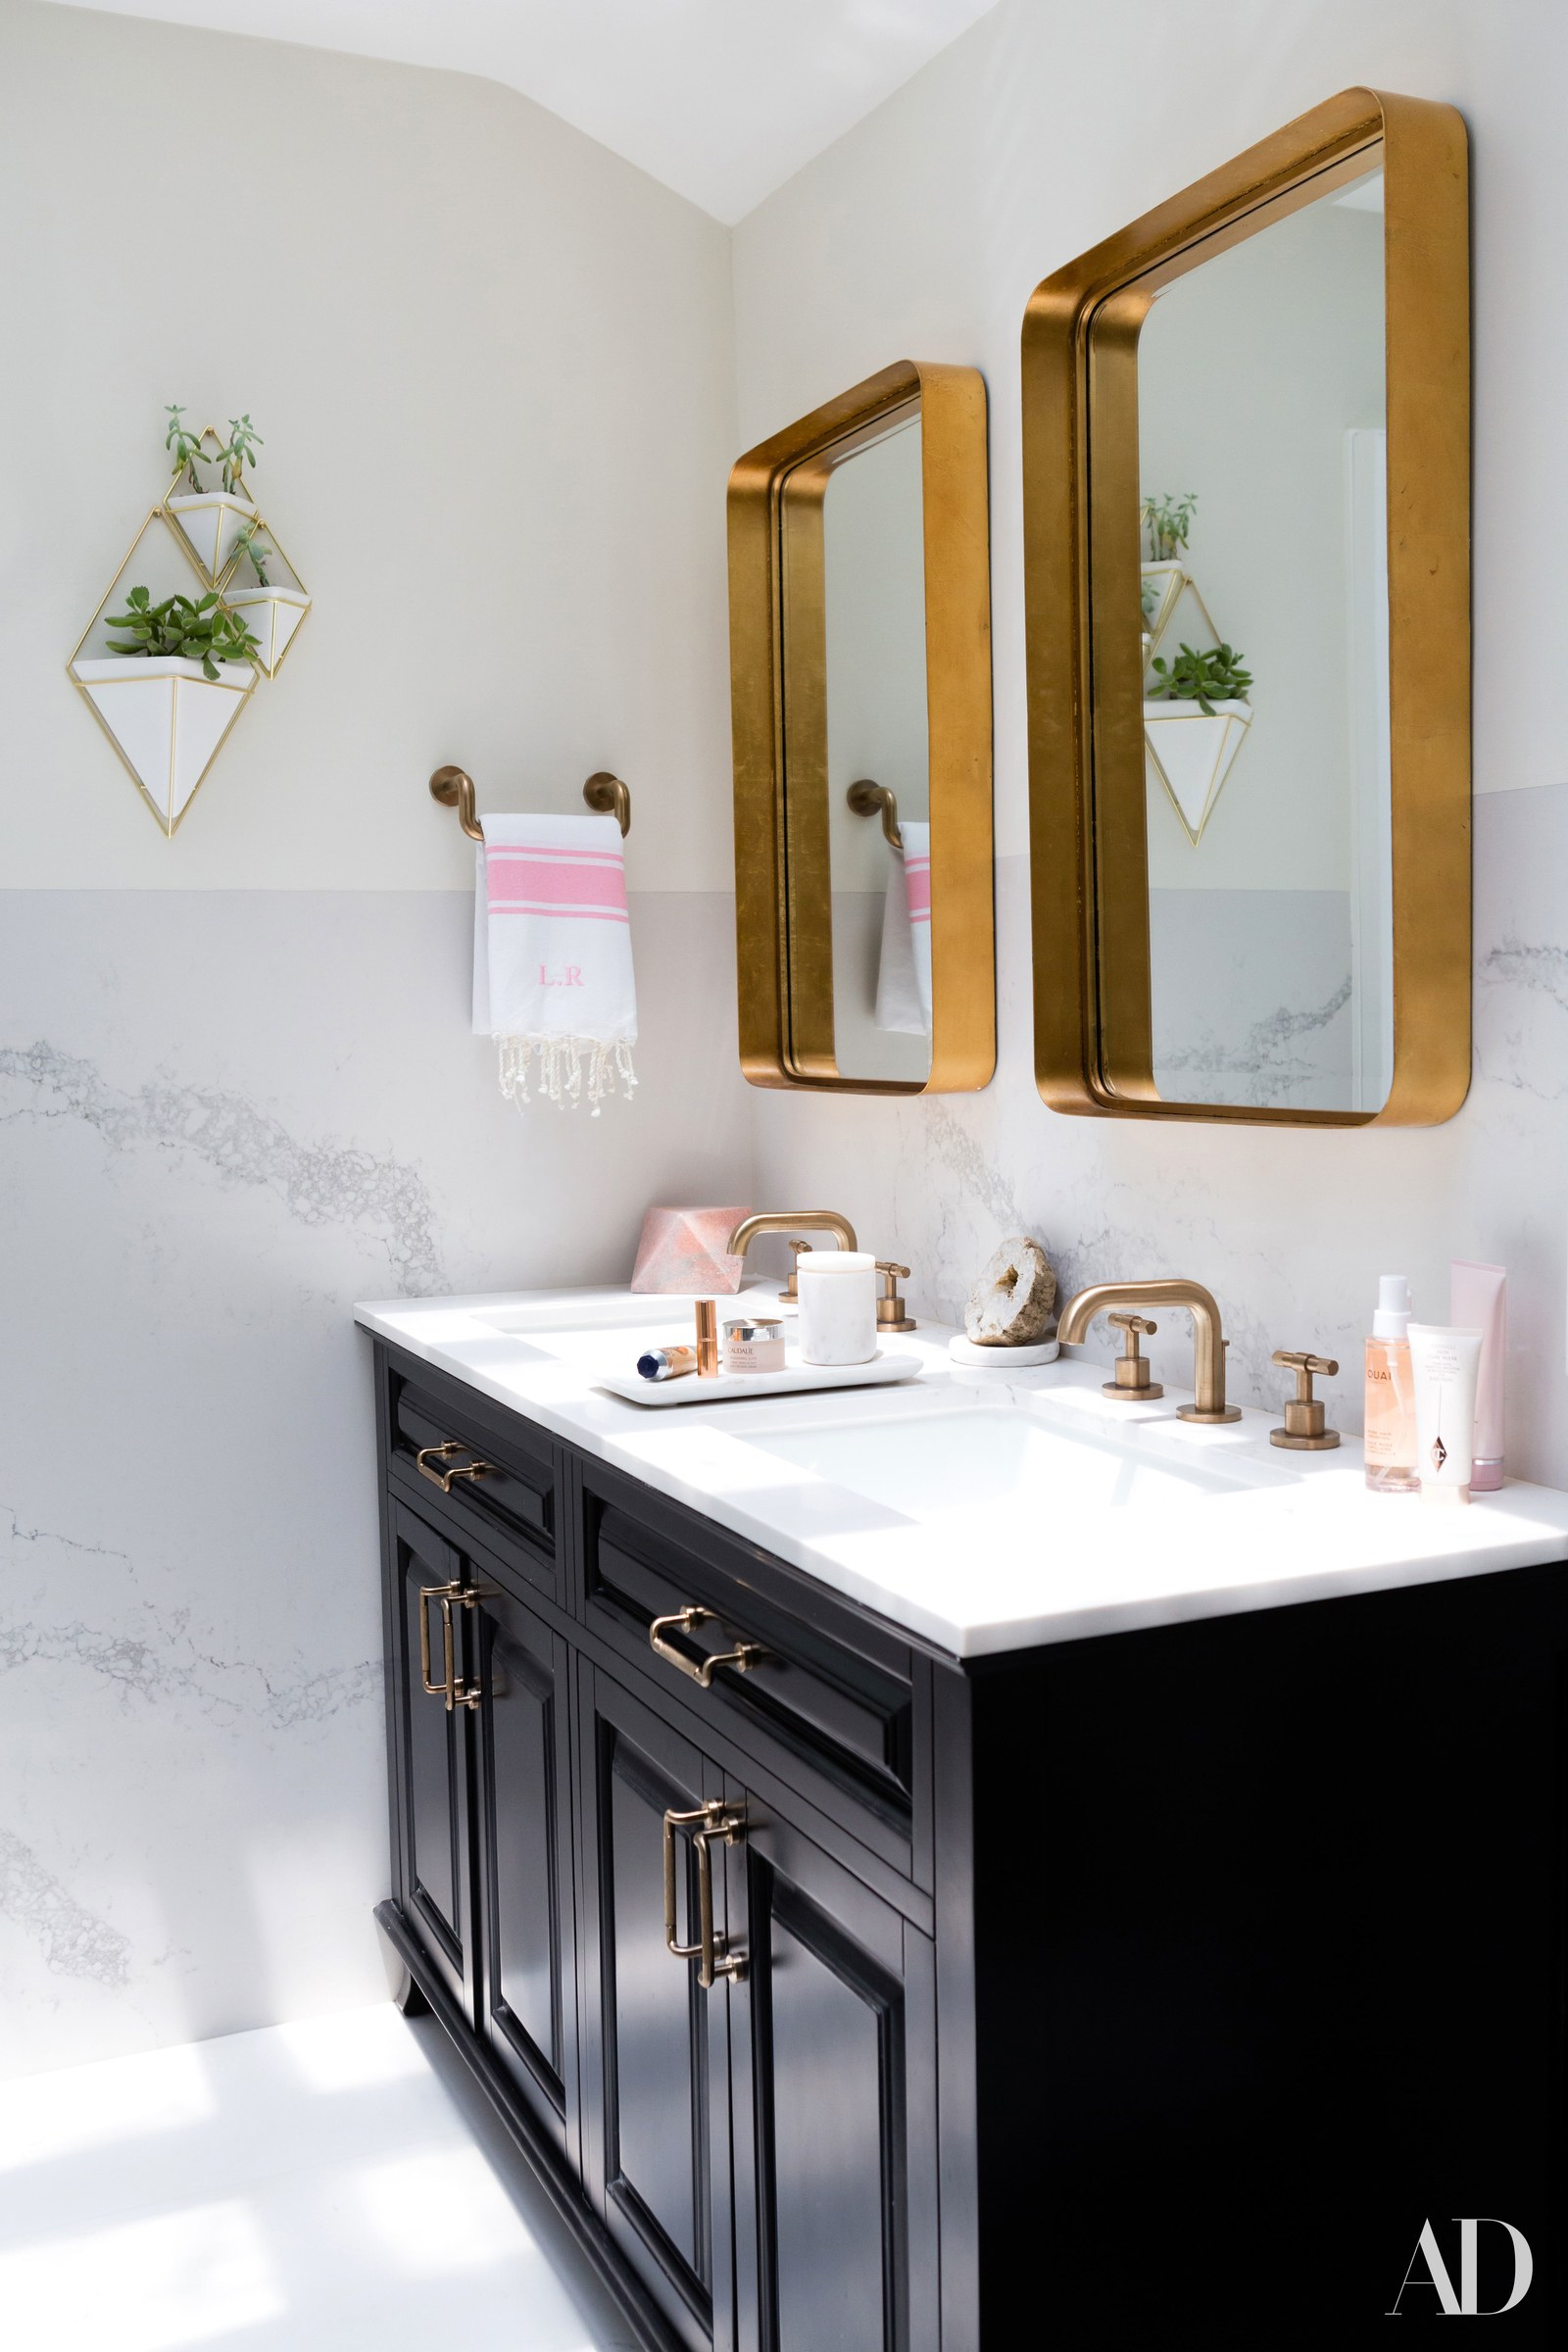 12 Bathroom Mirror Ideas For Every Style Architectural Digest with regard to dimensions 1600 X 2400